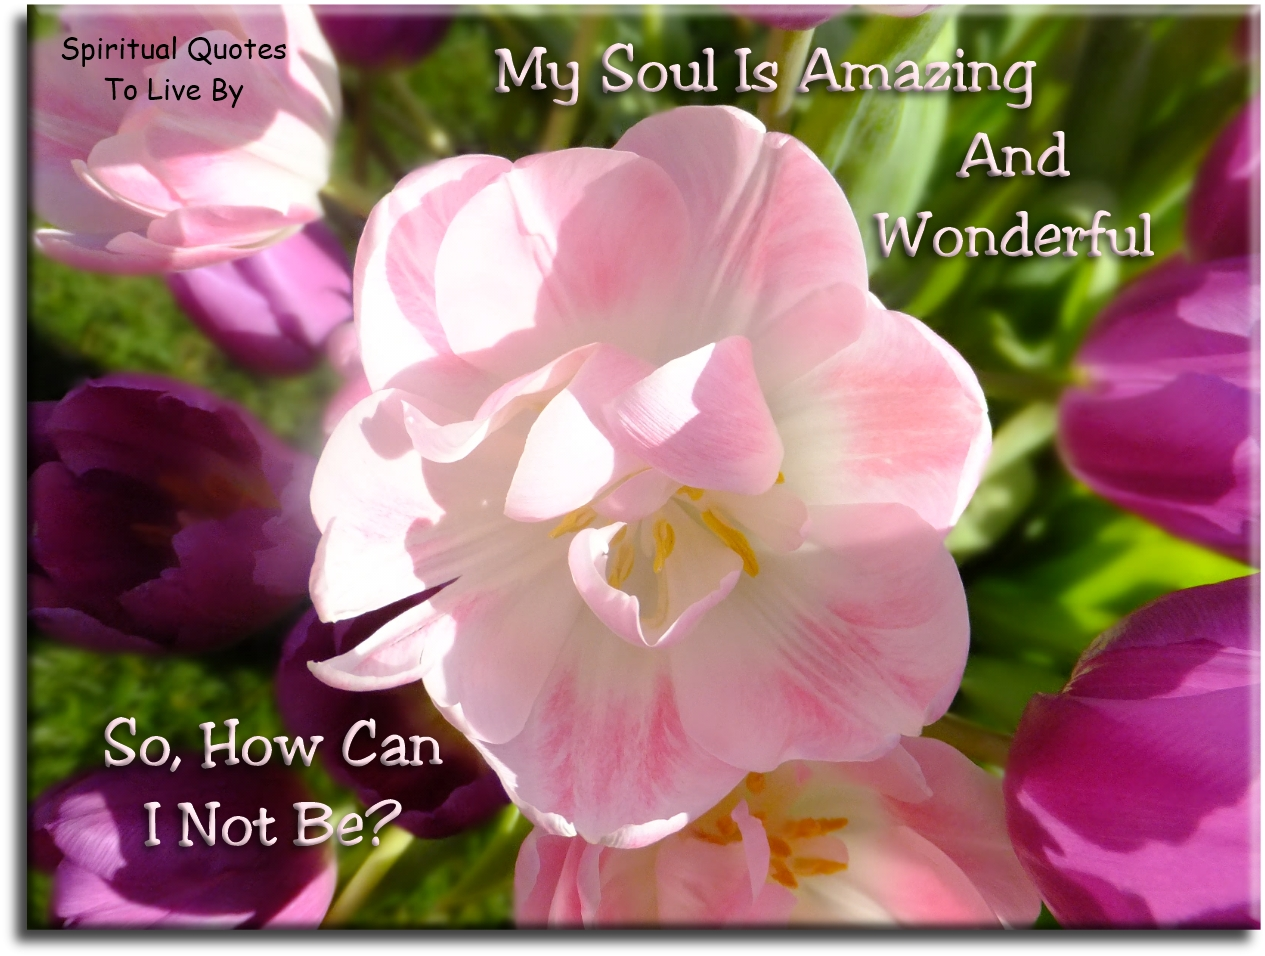 My Soul is amazing and wonderful, so how can I not be? - Spiritual Quotes To Live By